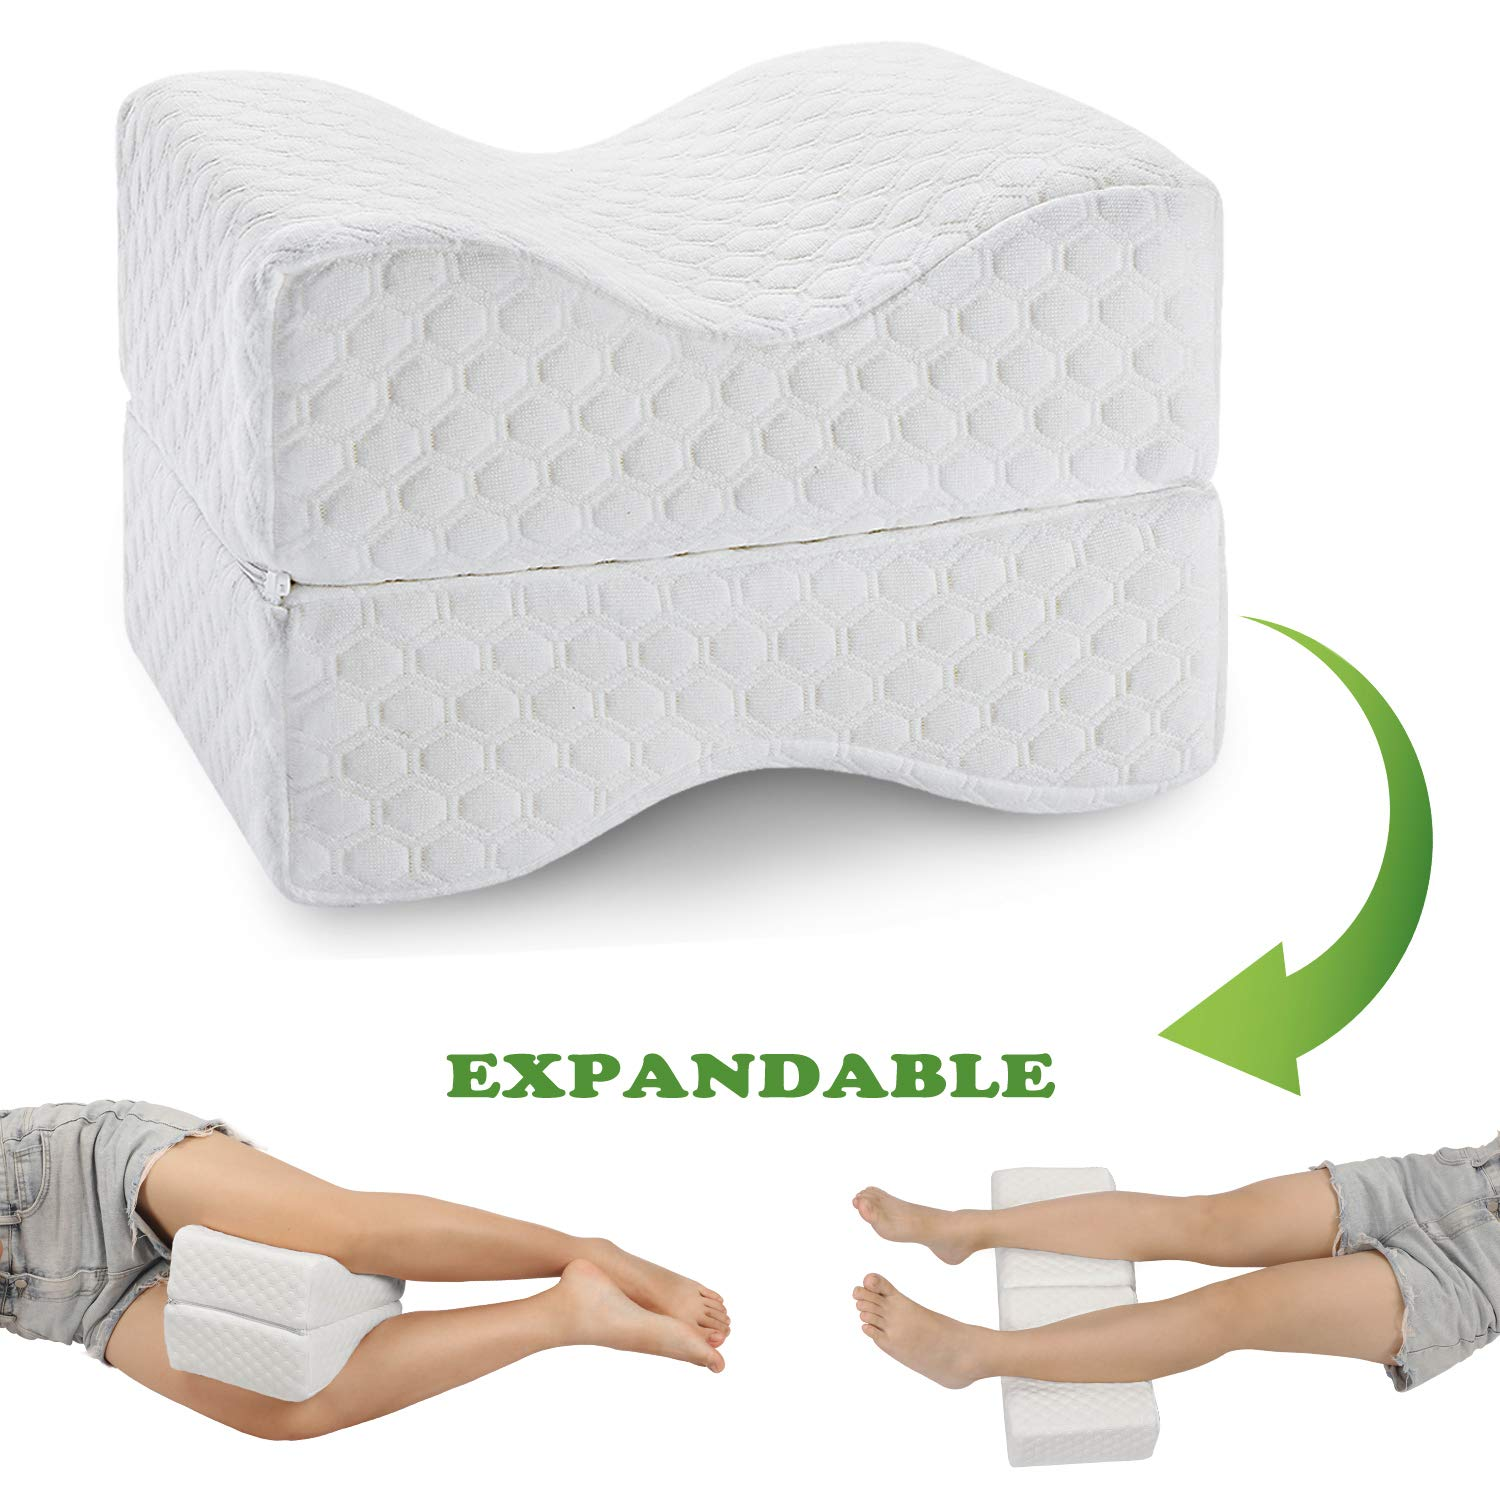 coisum knee pillow for side sleepers upgraded foldable expandable leg pillow for sciatica back pain leg hip joint pain orthopedic memory